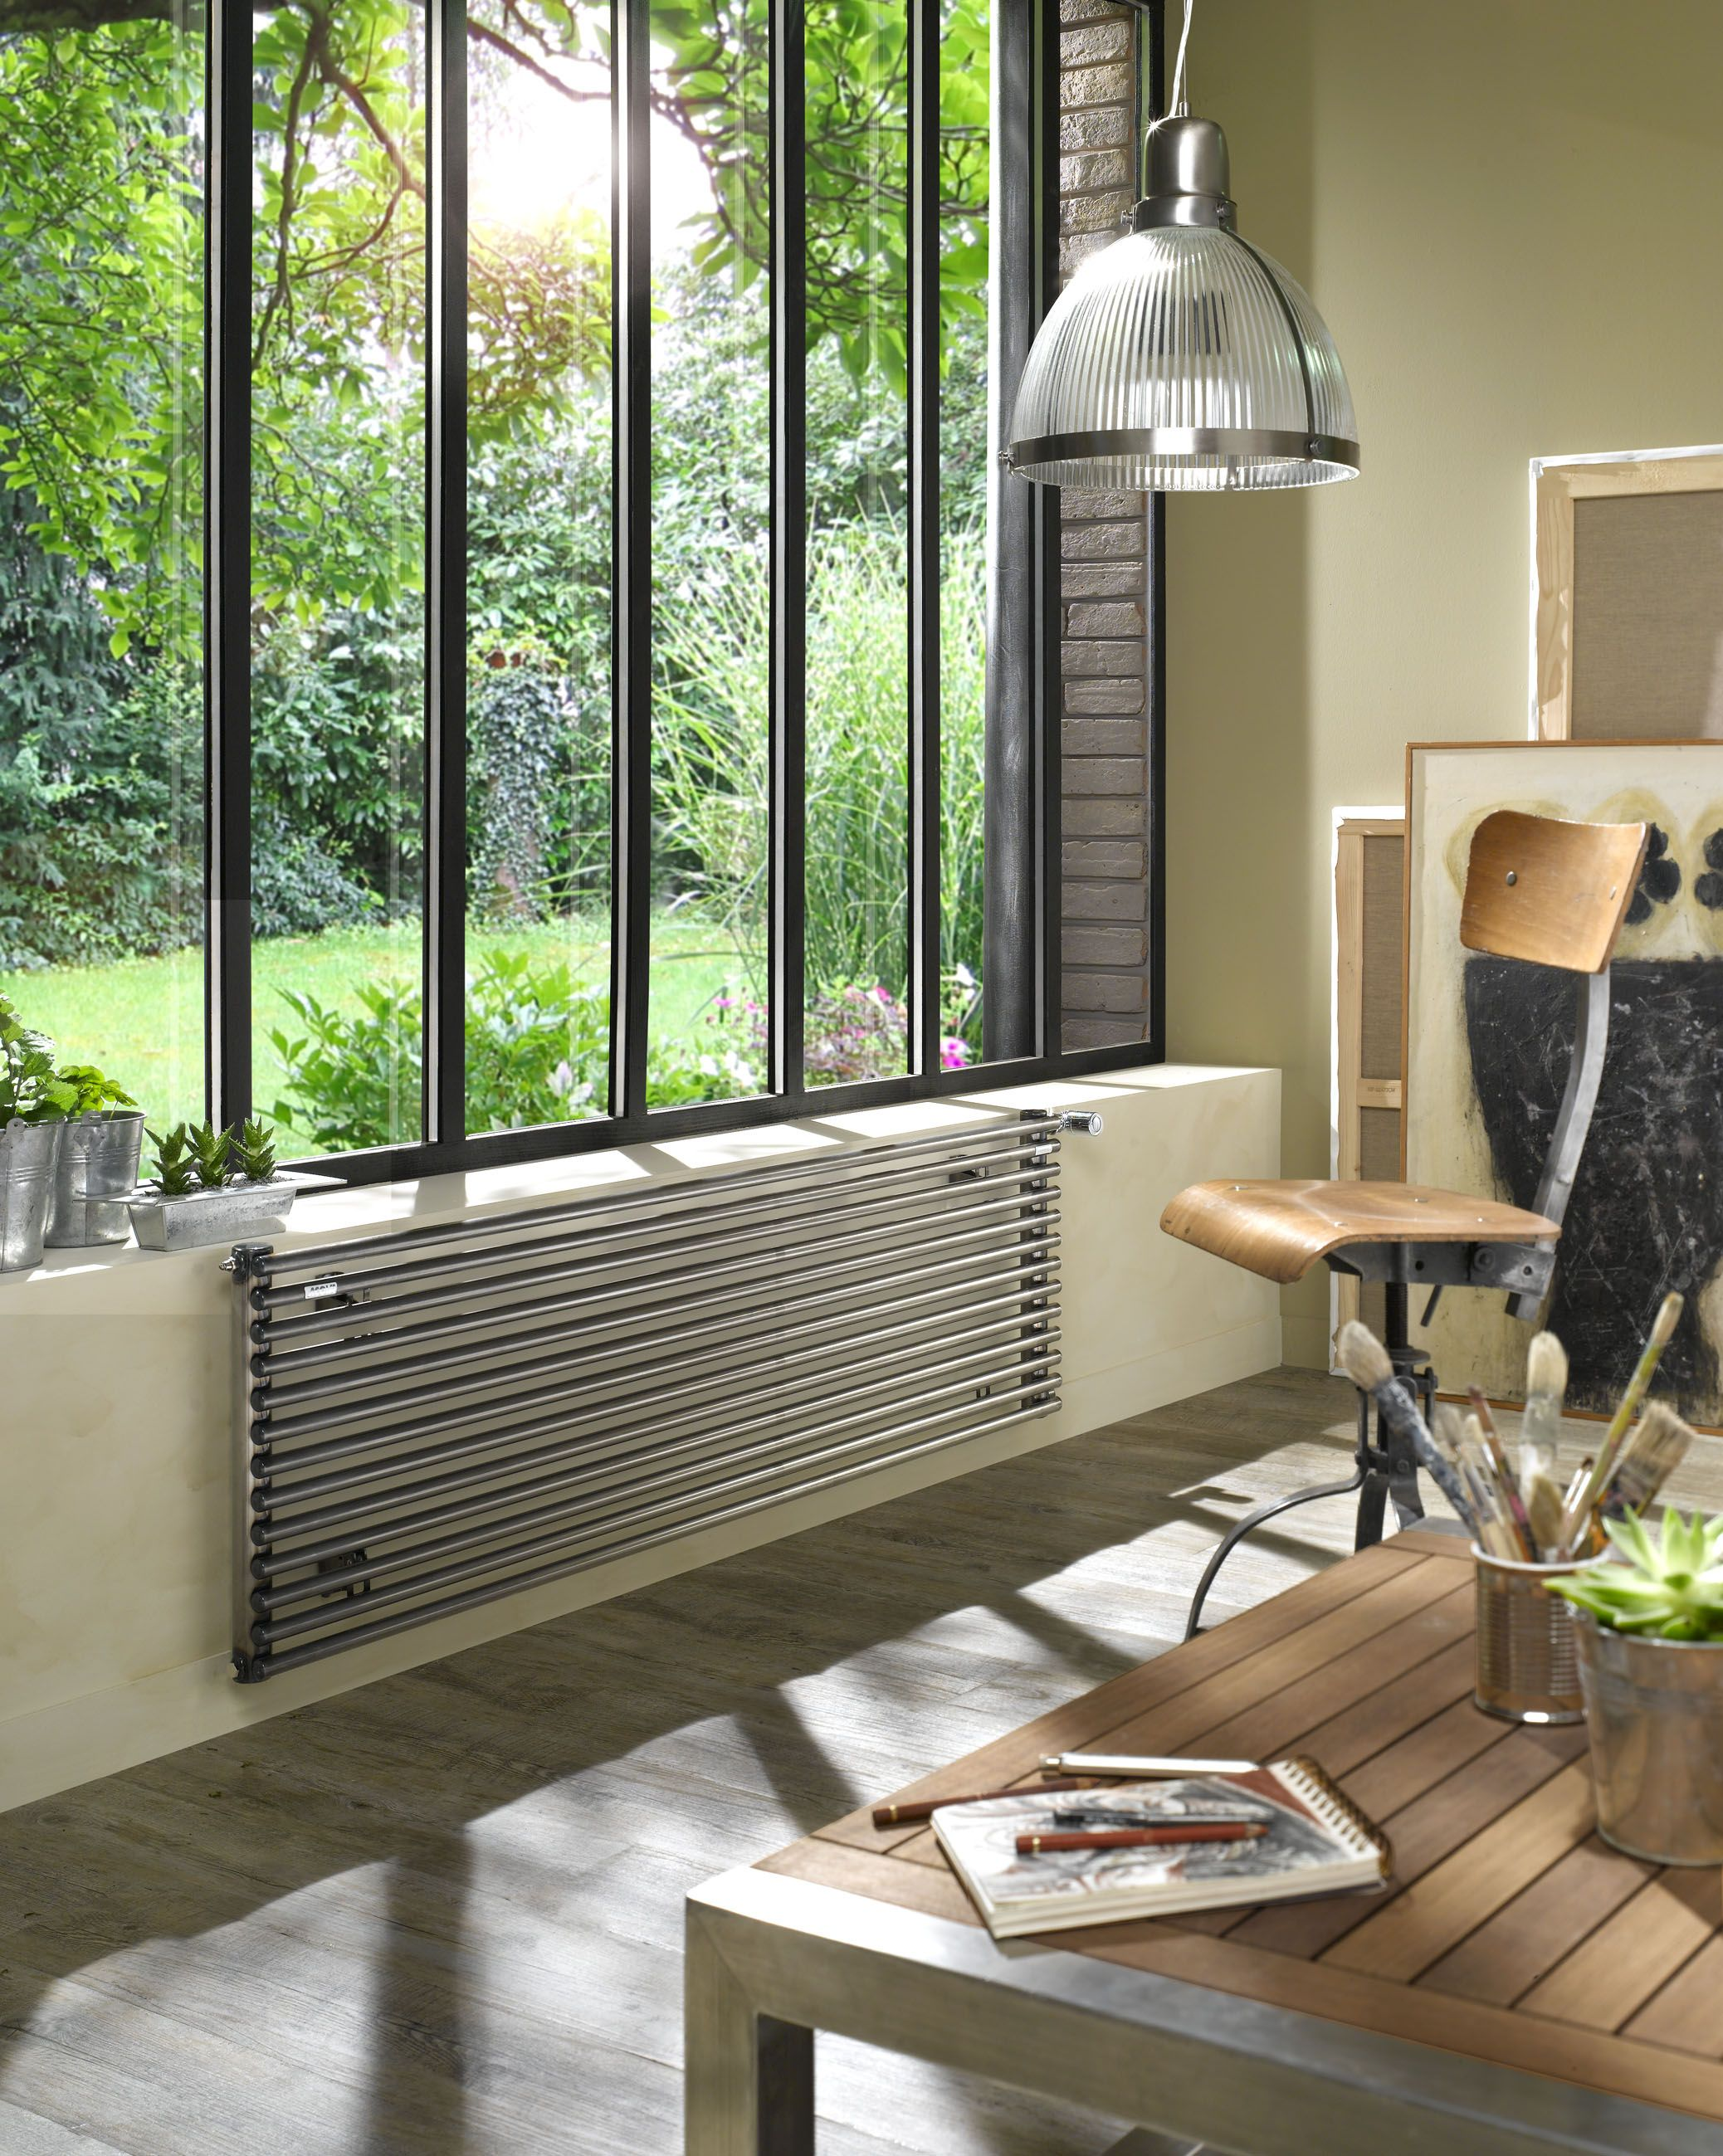 radiateur eau chaude acova k va horizontal pi ces de vie. Black Bedroom Furniture Sets. Home Design Ideas